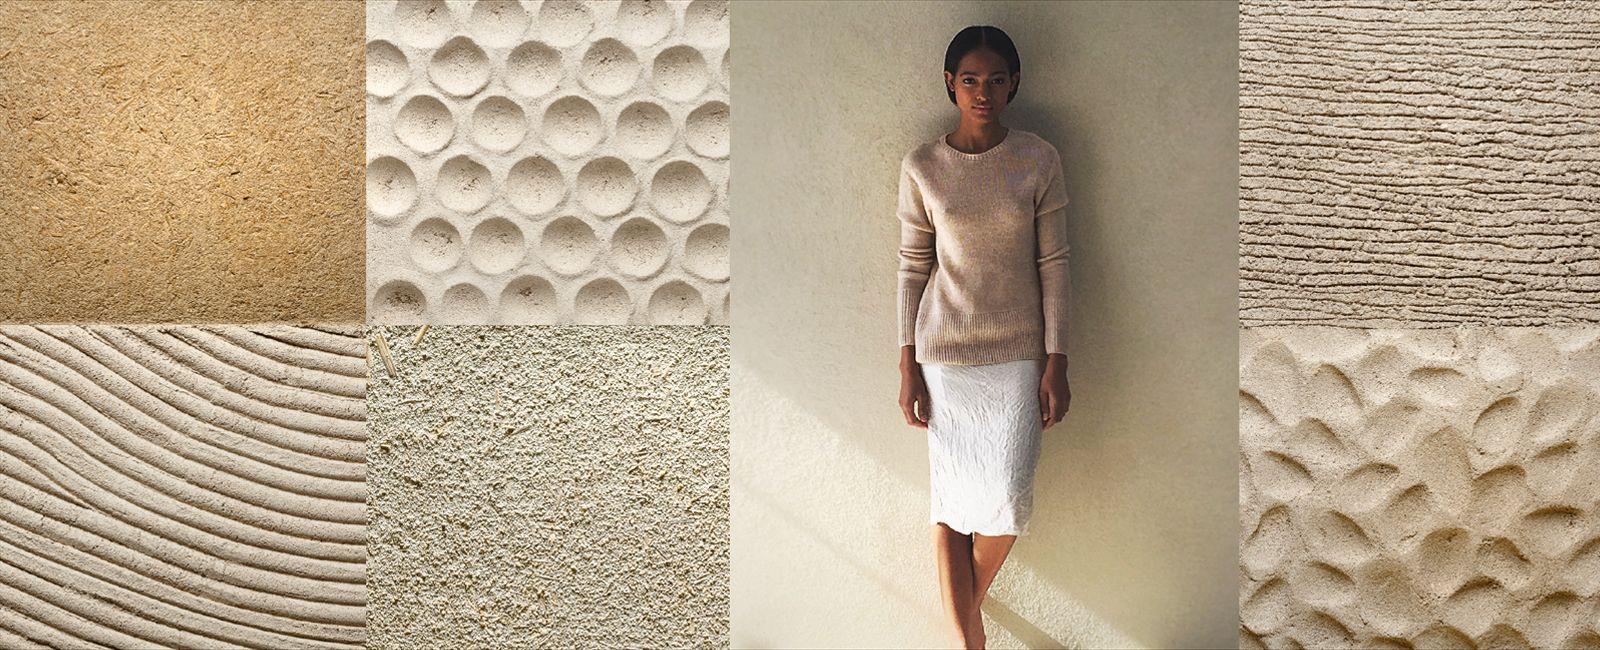 Natural clay plaster wall finishes & clay wall systems from Clayworks UK